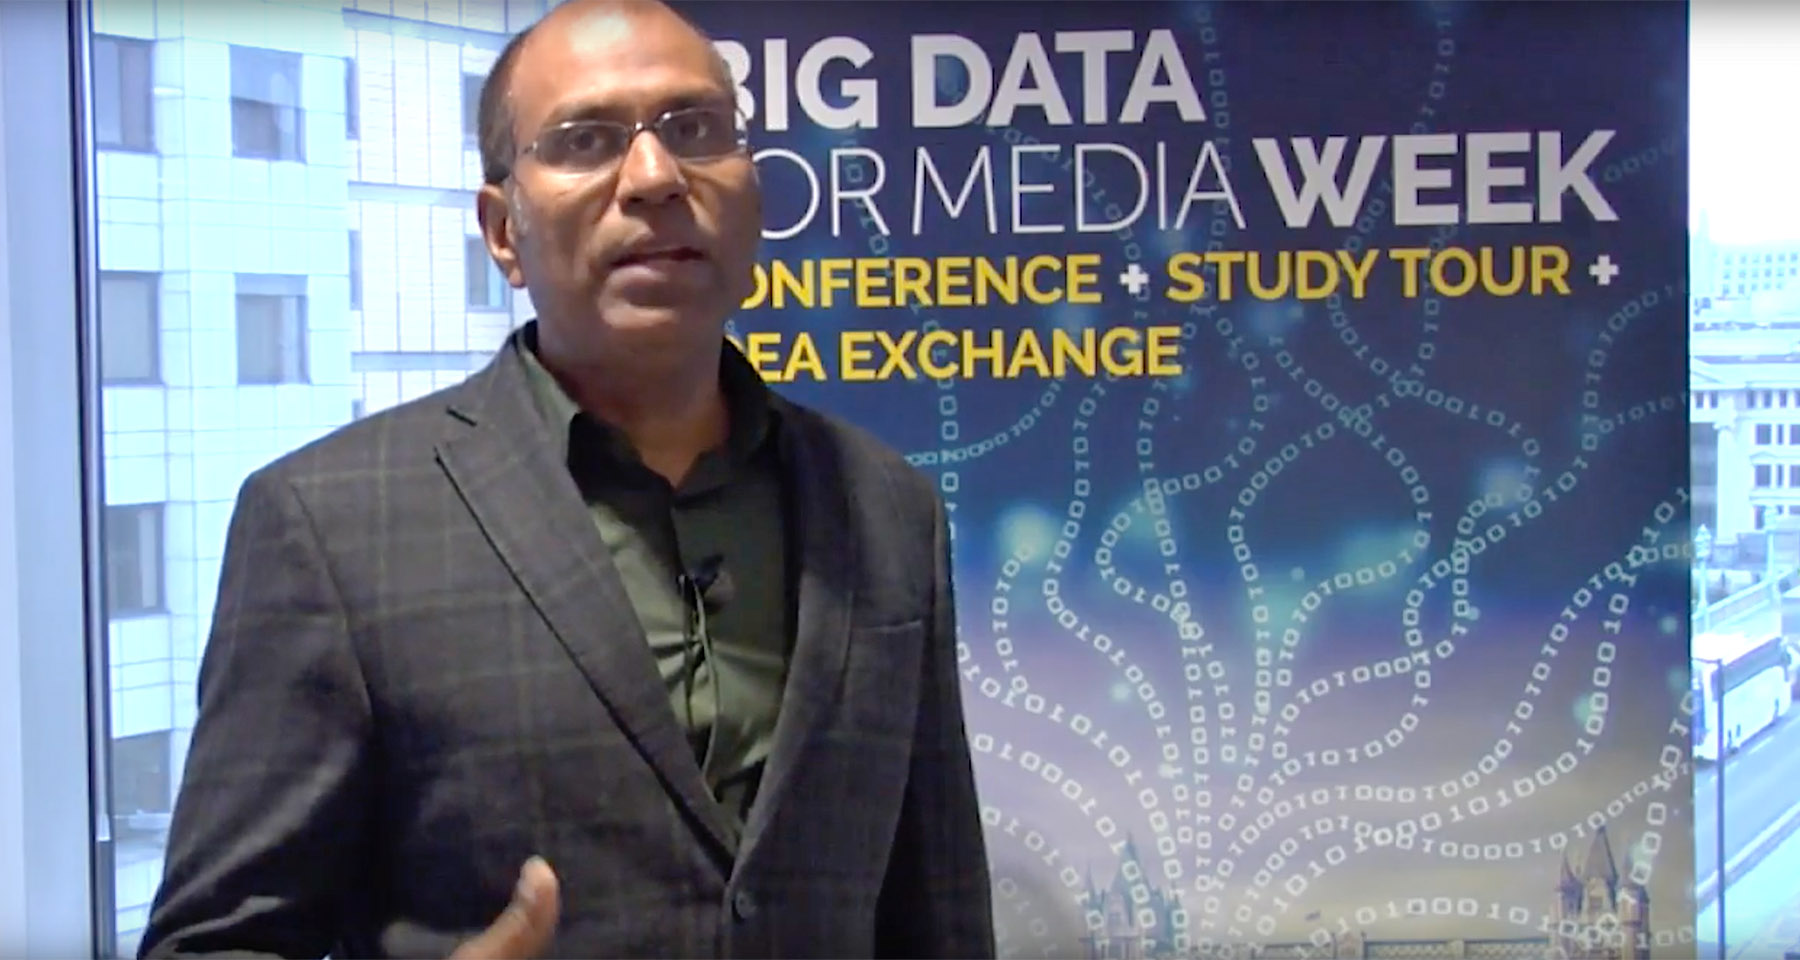 DB Digital focuses Big Data strategy on engagement metric